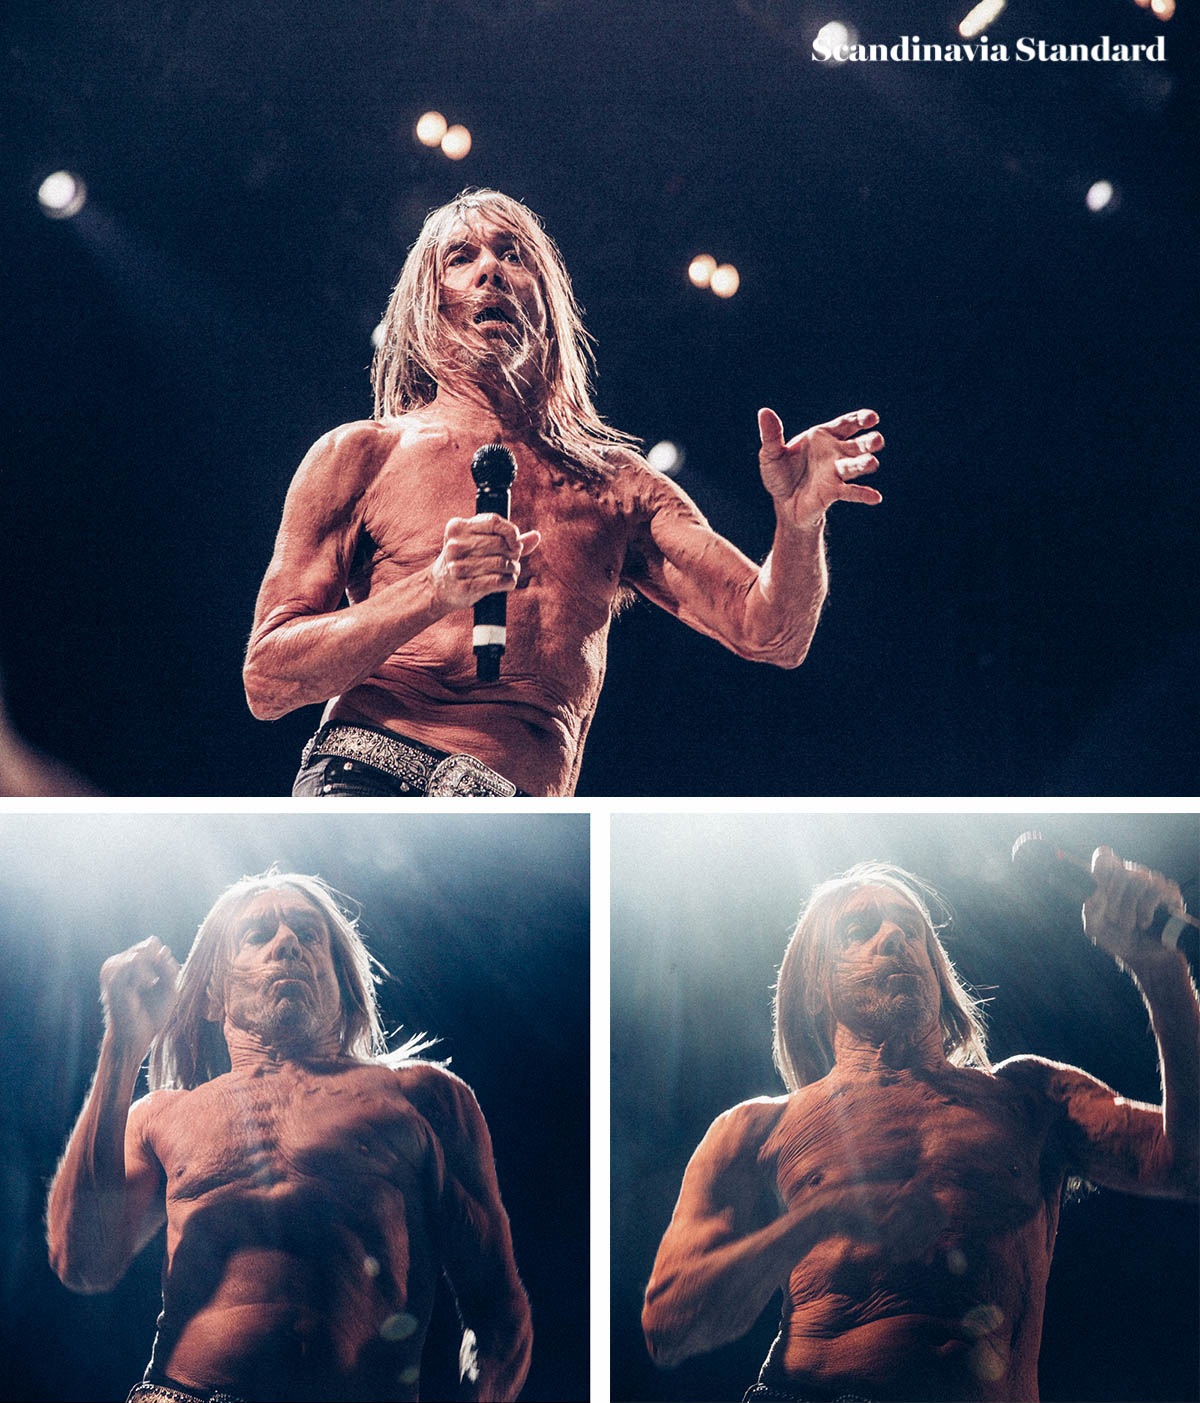 northside-festival-iggy-pop-2